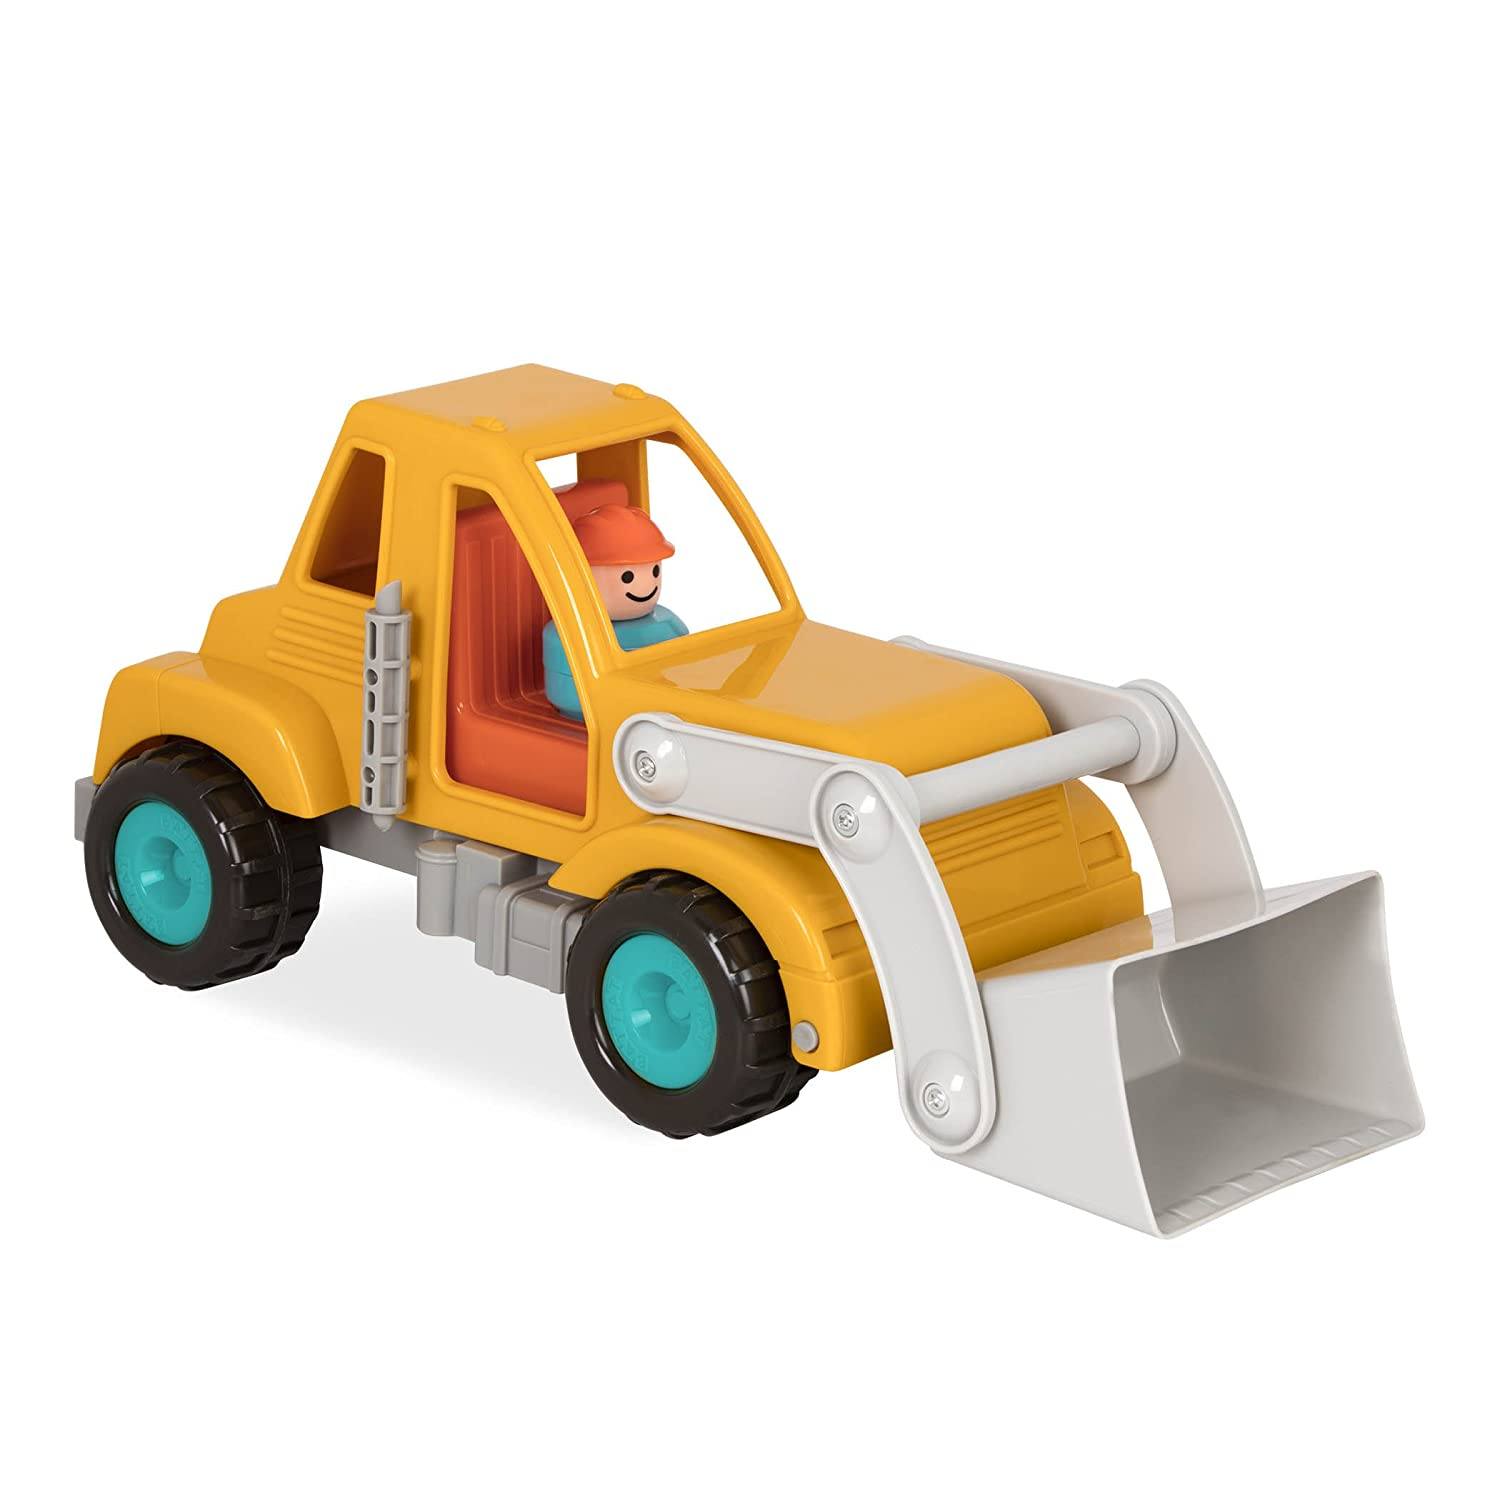 Battat  Garbage Truck with Working Movable Parts and Driver-Toy Trucks for Toddlers 18m+